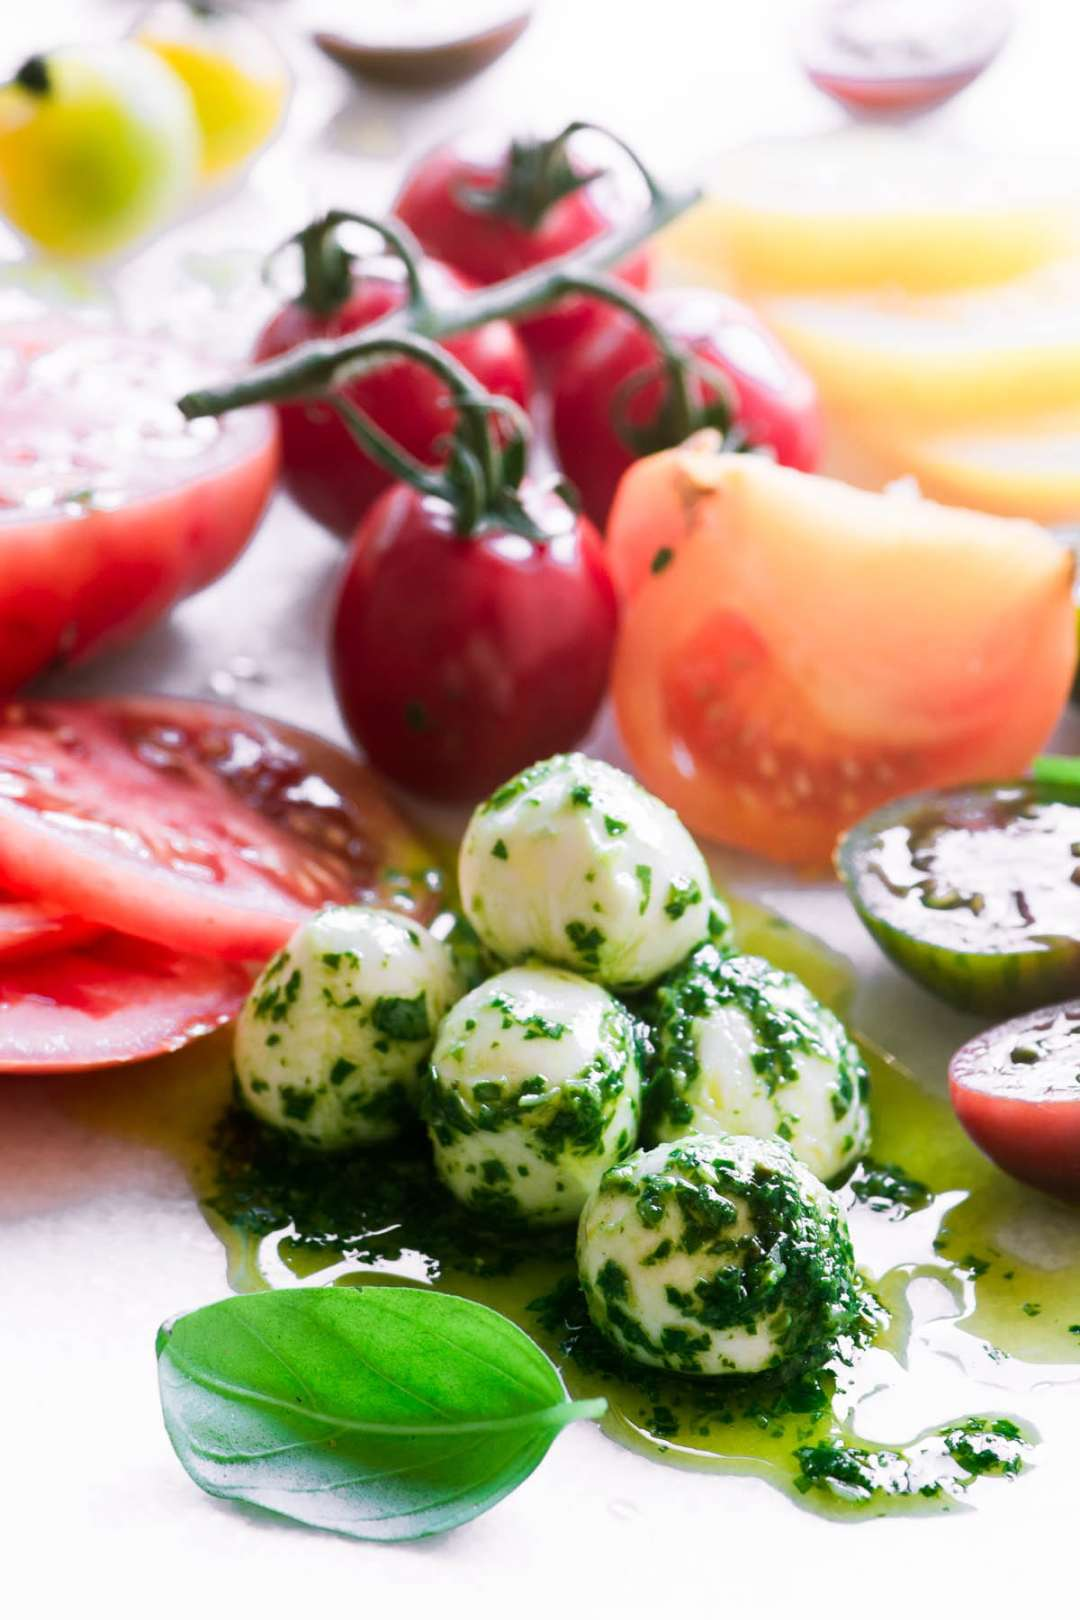 Basil marinated mozzarella with heirloom tomatoes on a white surface